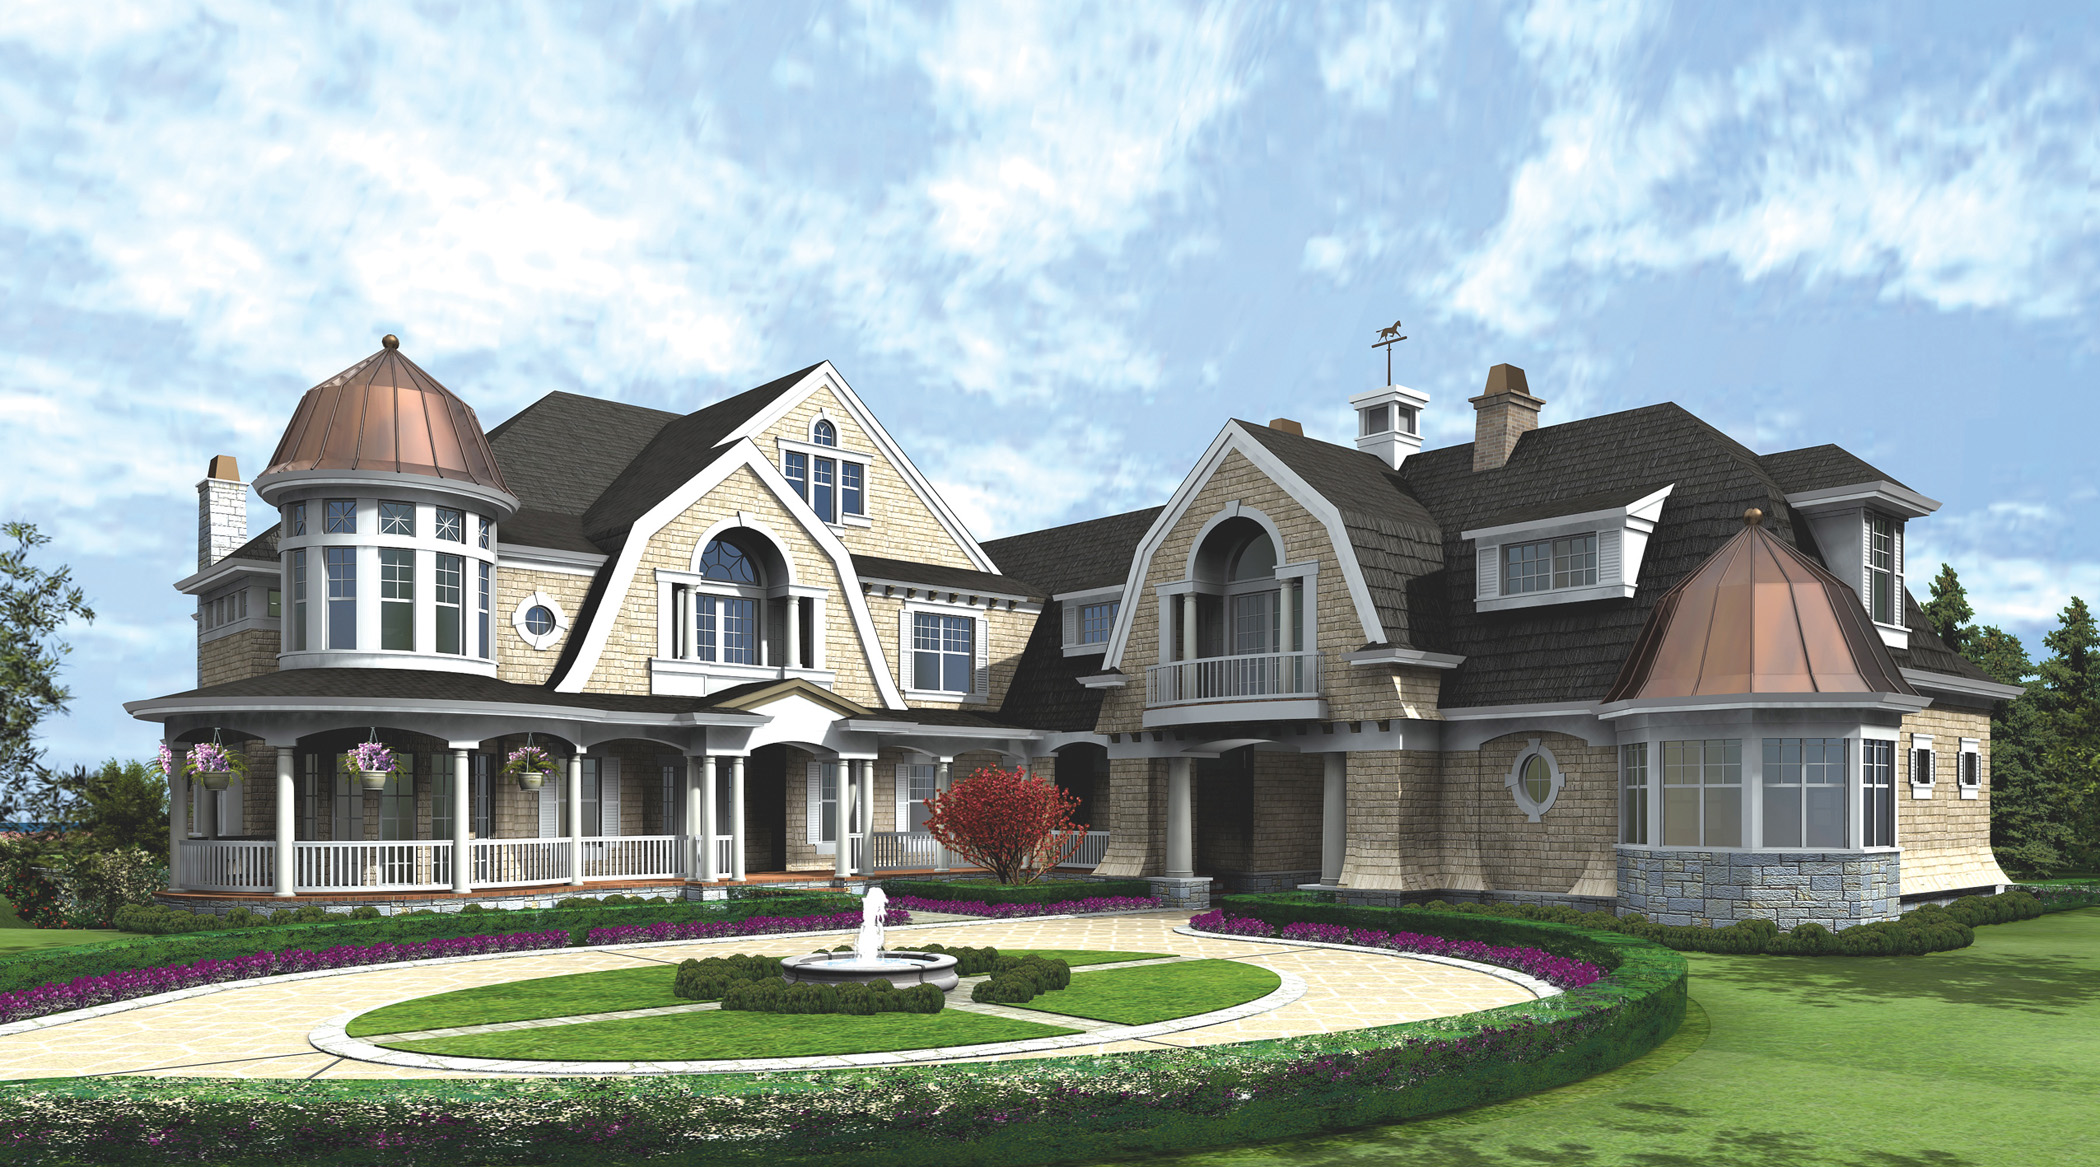 Architectural Home Plans Luxury: Newport Elegance Award-Winning Luxury Plan